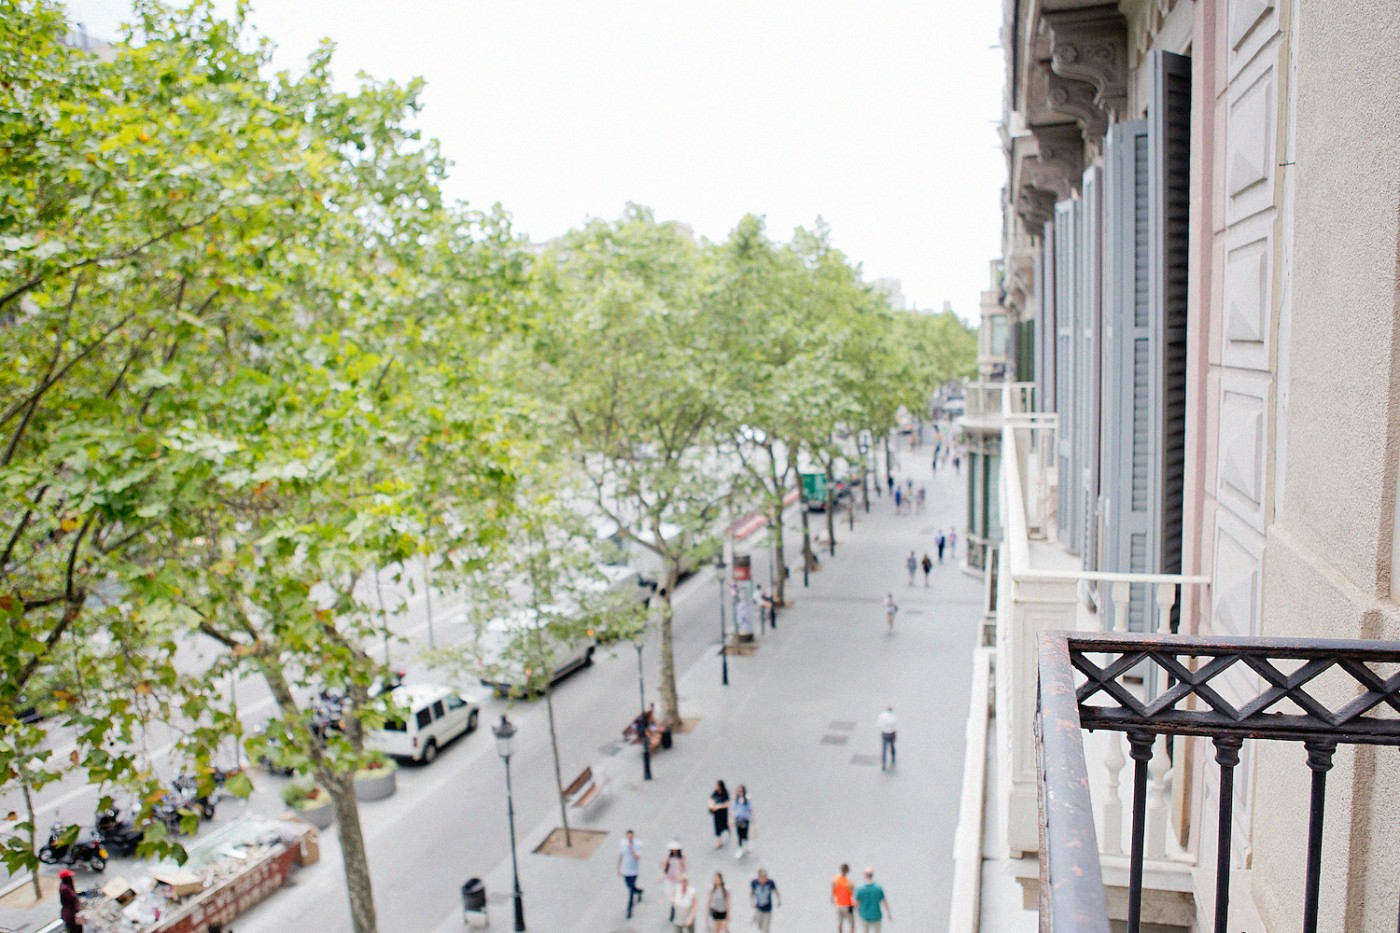 hotel condes barcelona, hotels in Barcelona, where to stay in Barcelona